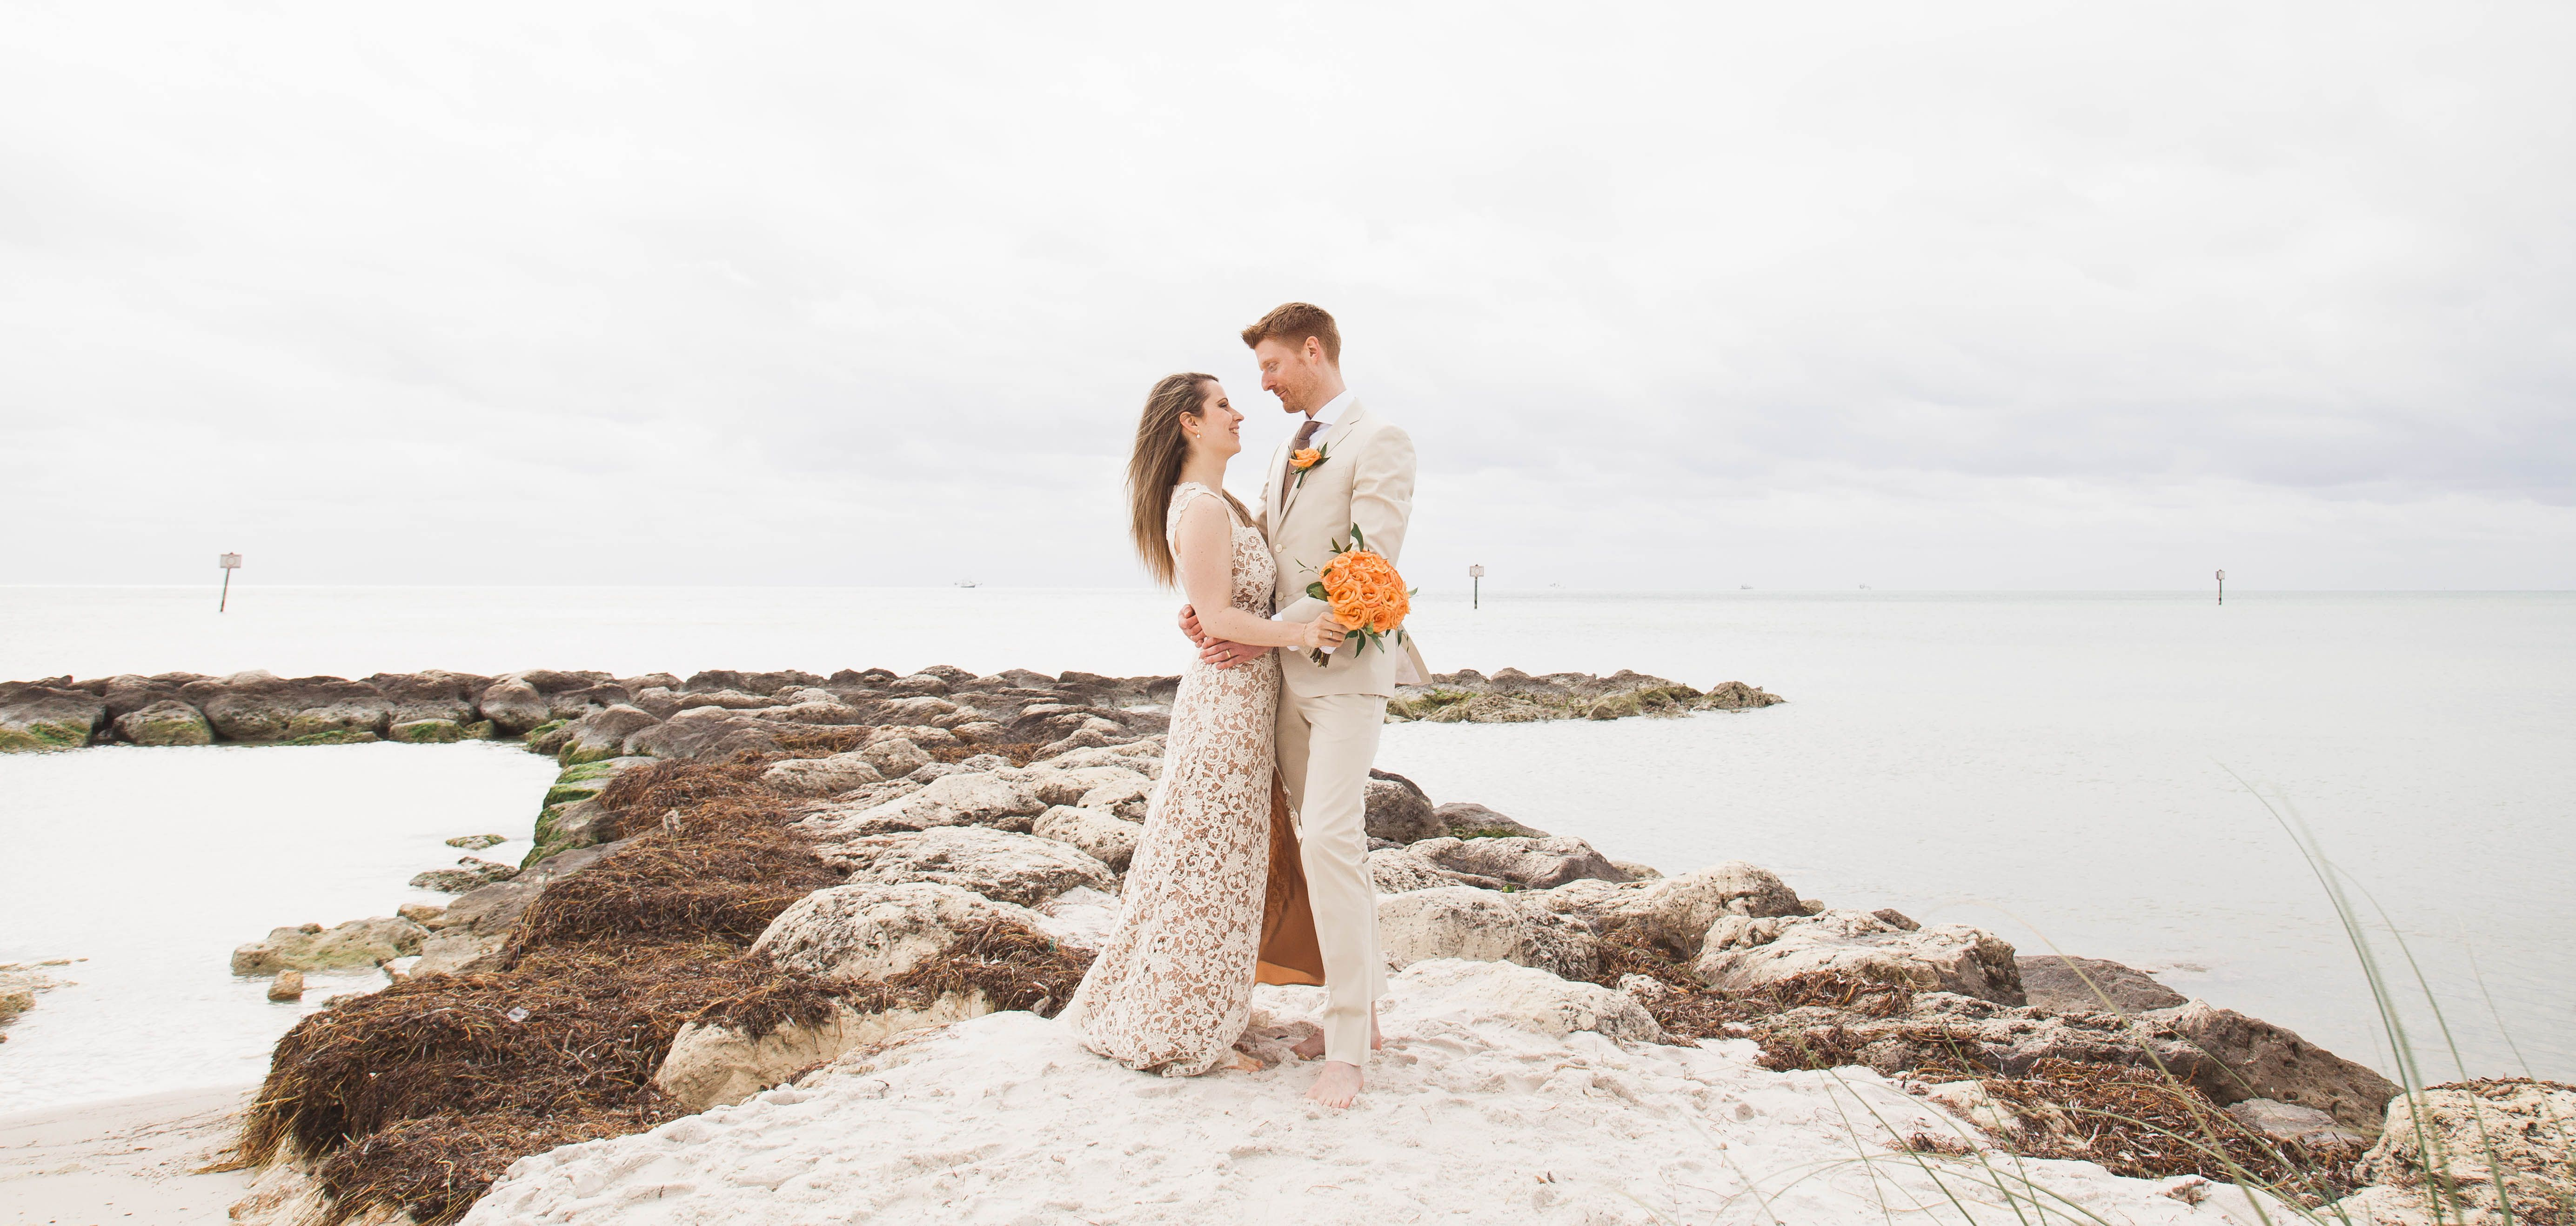 Intimate Elopement at Smathers Beach on Borrowed